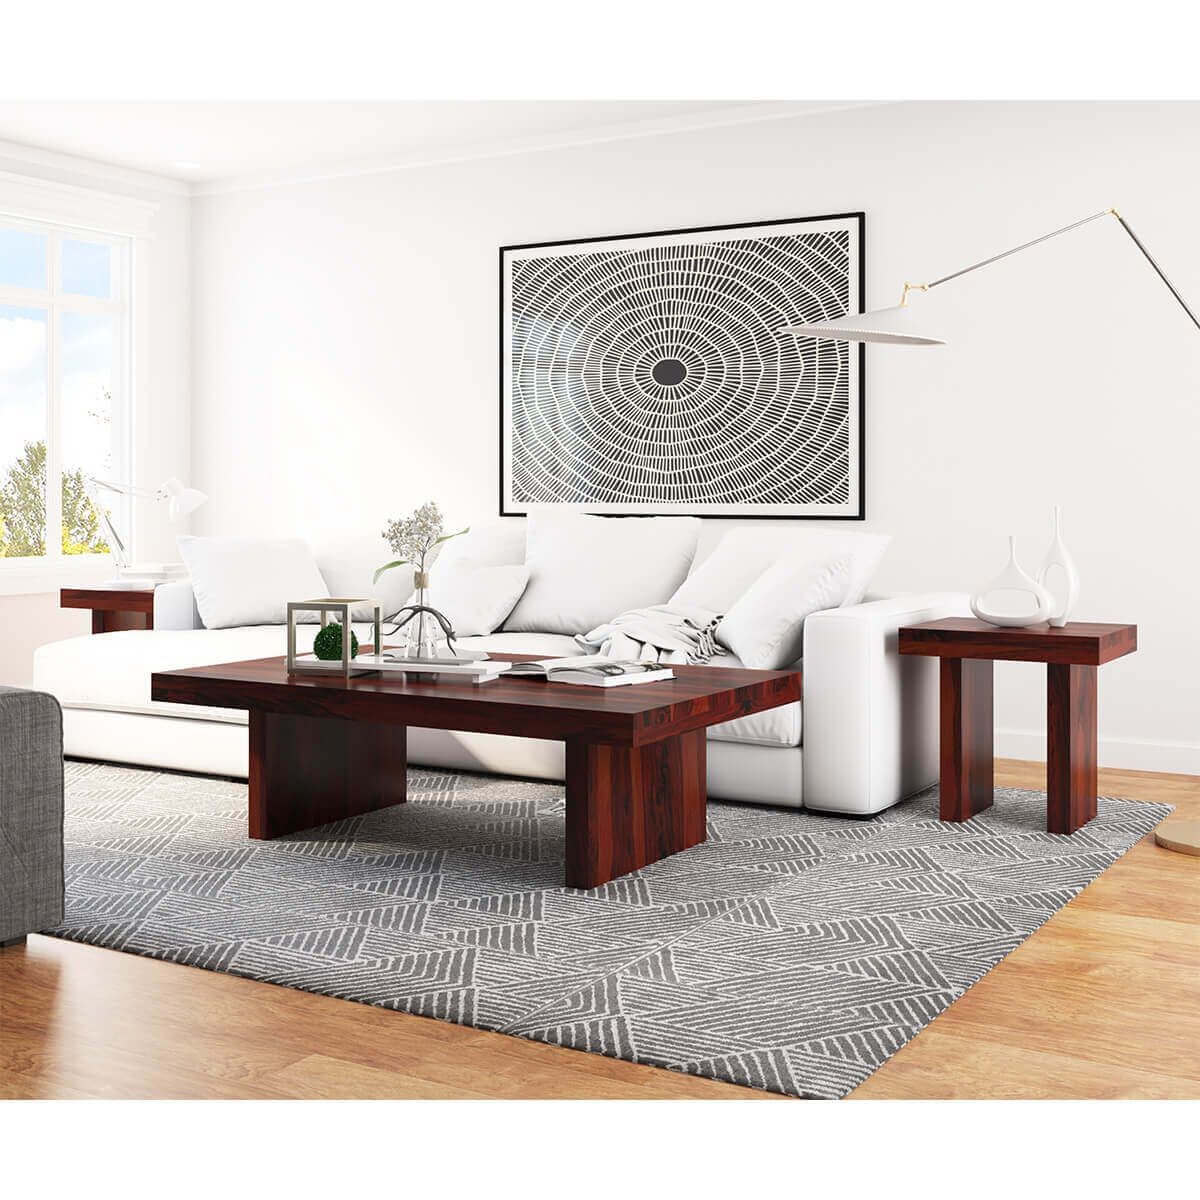 Contemporary Rustic Wood 3 Piece Large Coffee Table And End Table Set Coffee Table Large Coffee Tables Rustic Contemporary [ 1200 x 1200 Pixel ]